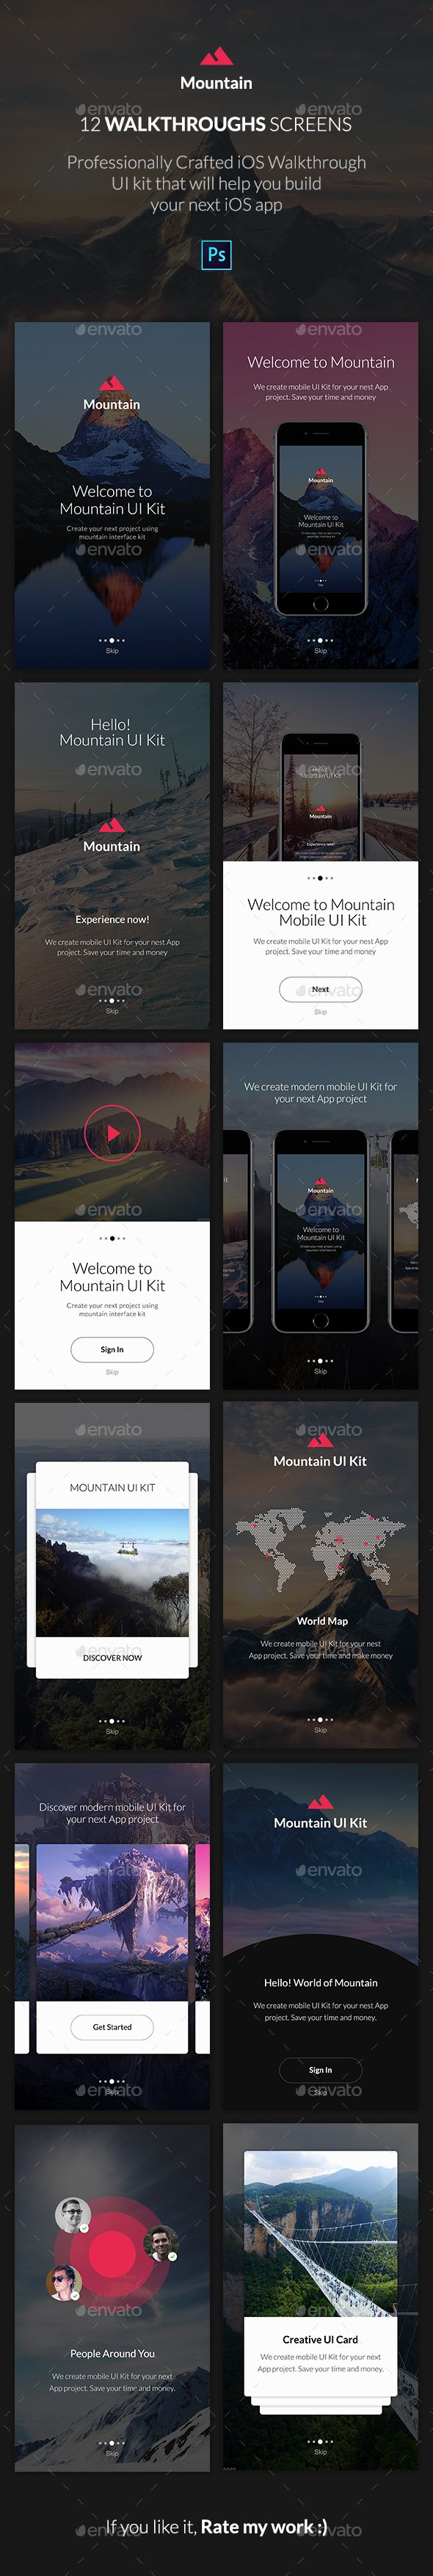 Mountain App UI KIT - Walkthroughs - #User #Interfaces #Web Elements Download here: https://graphicriver.net/item/mountain-app-ui-kit-walkthroughs/19721833?ref=alena994